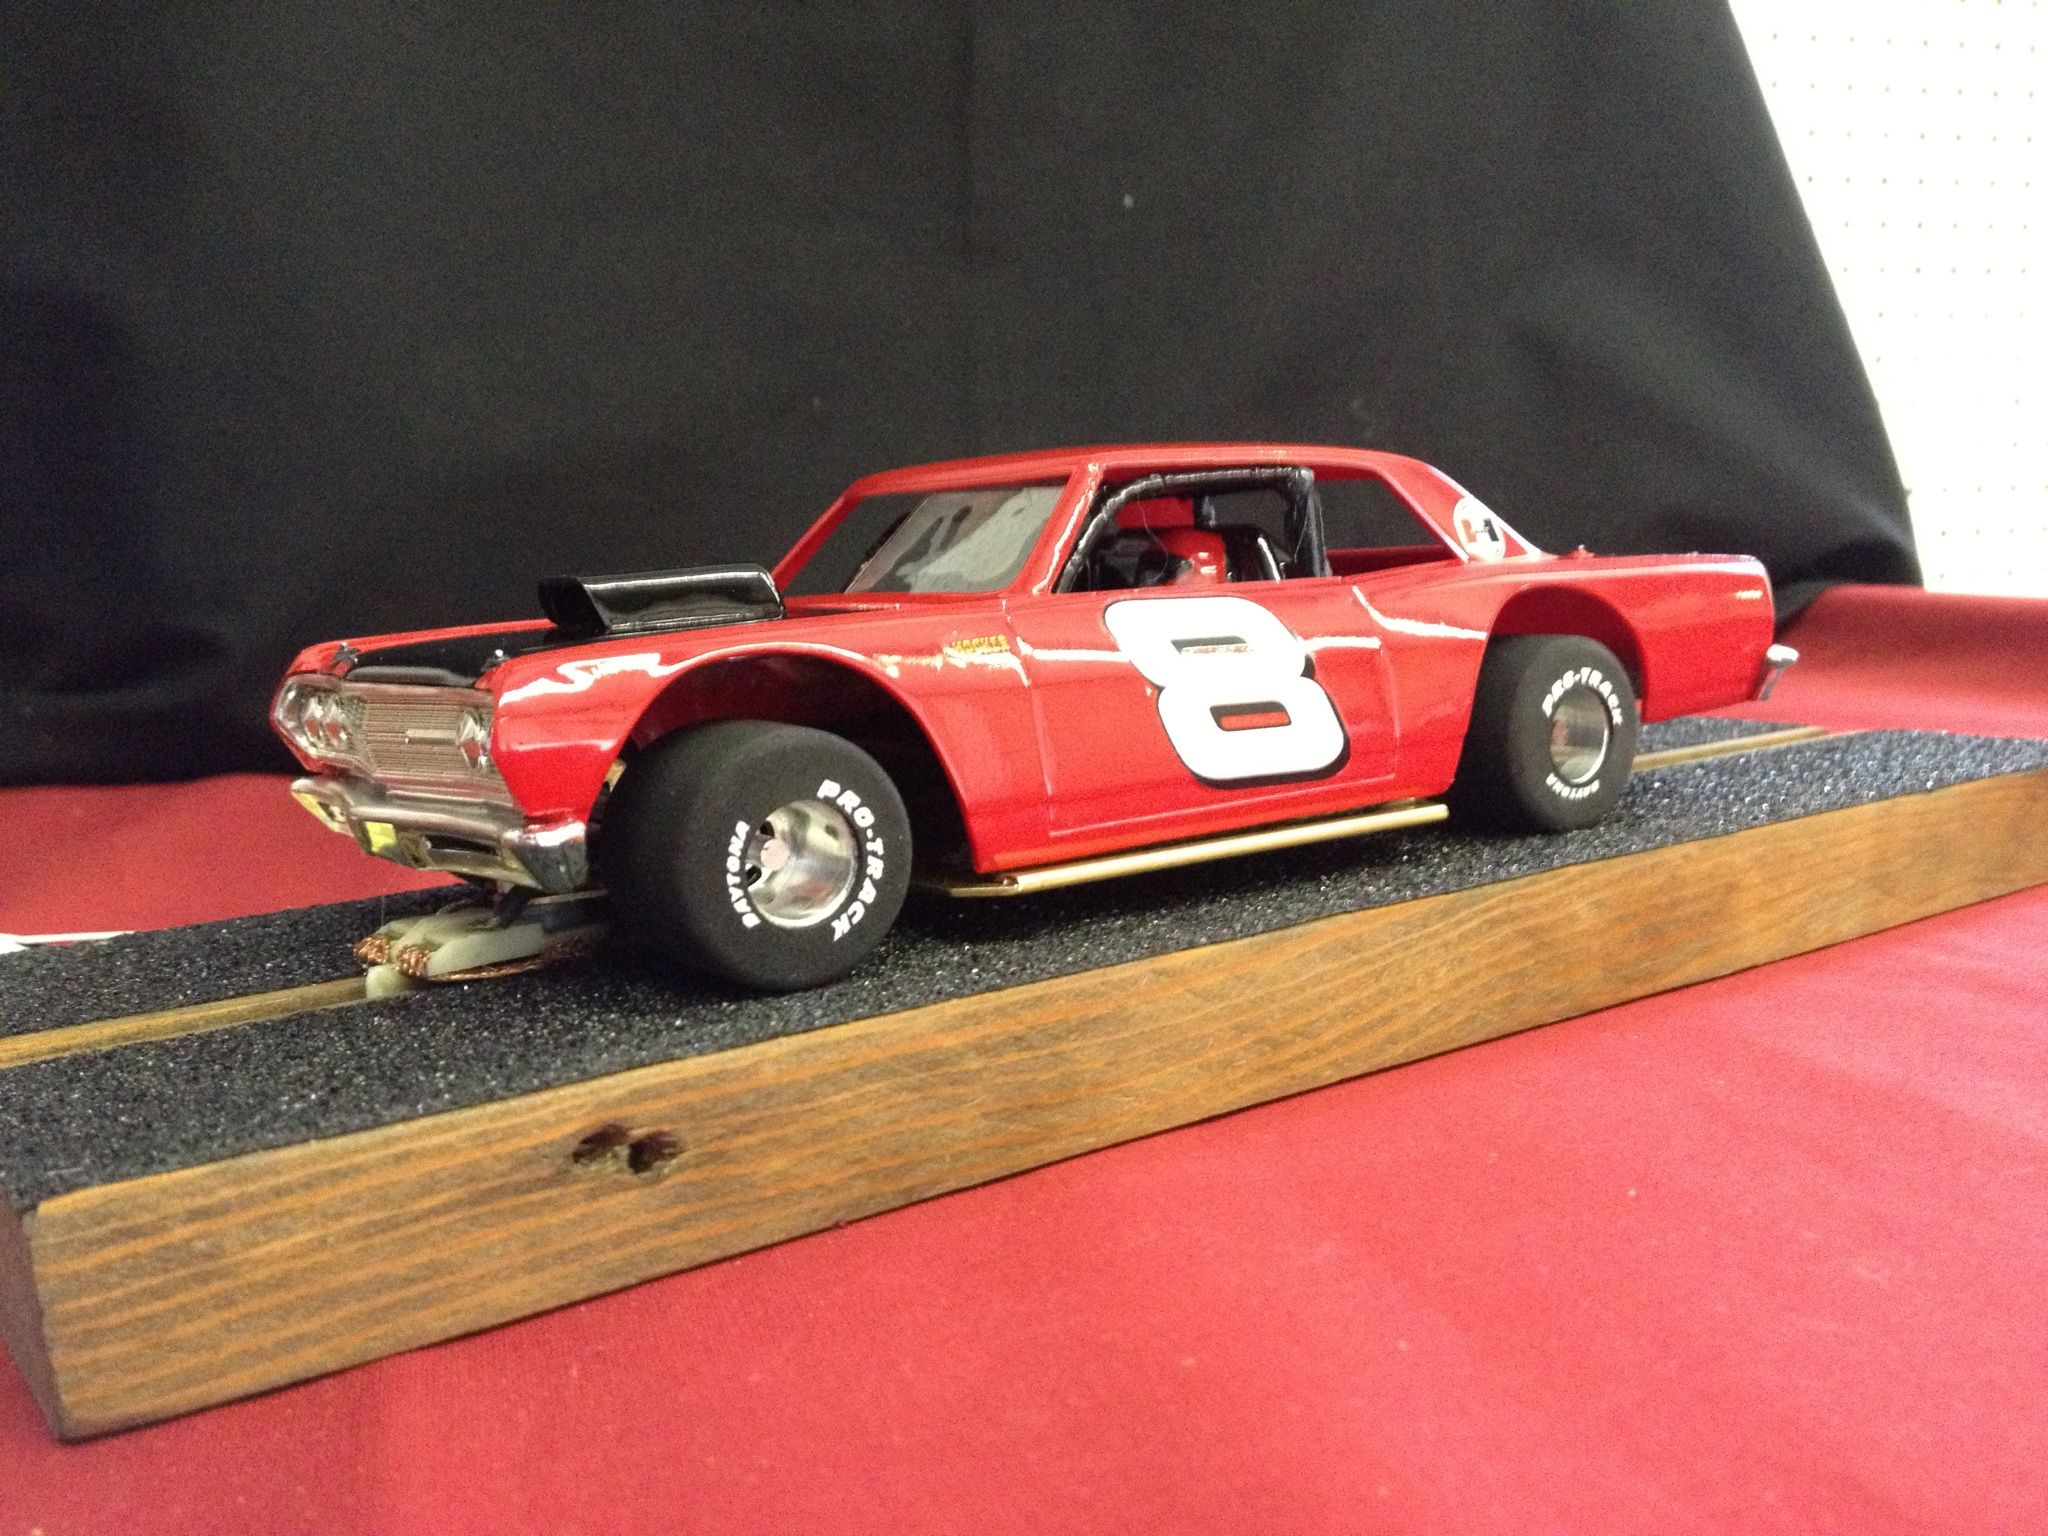 Raceway Pictures as well Watch as well 1699882 Espn Body Issue 2013 Posing Athletes Whose Popularity Will Skyrocket in addition Custom Track Builders in addition 893776 Slot Cars. on slot car drag track sale